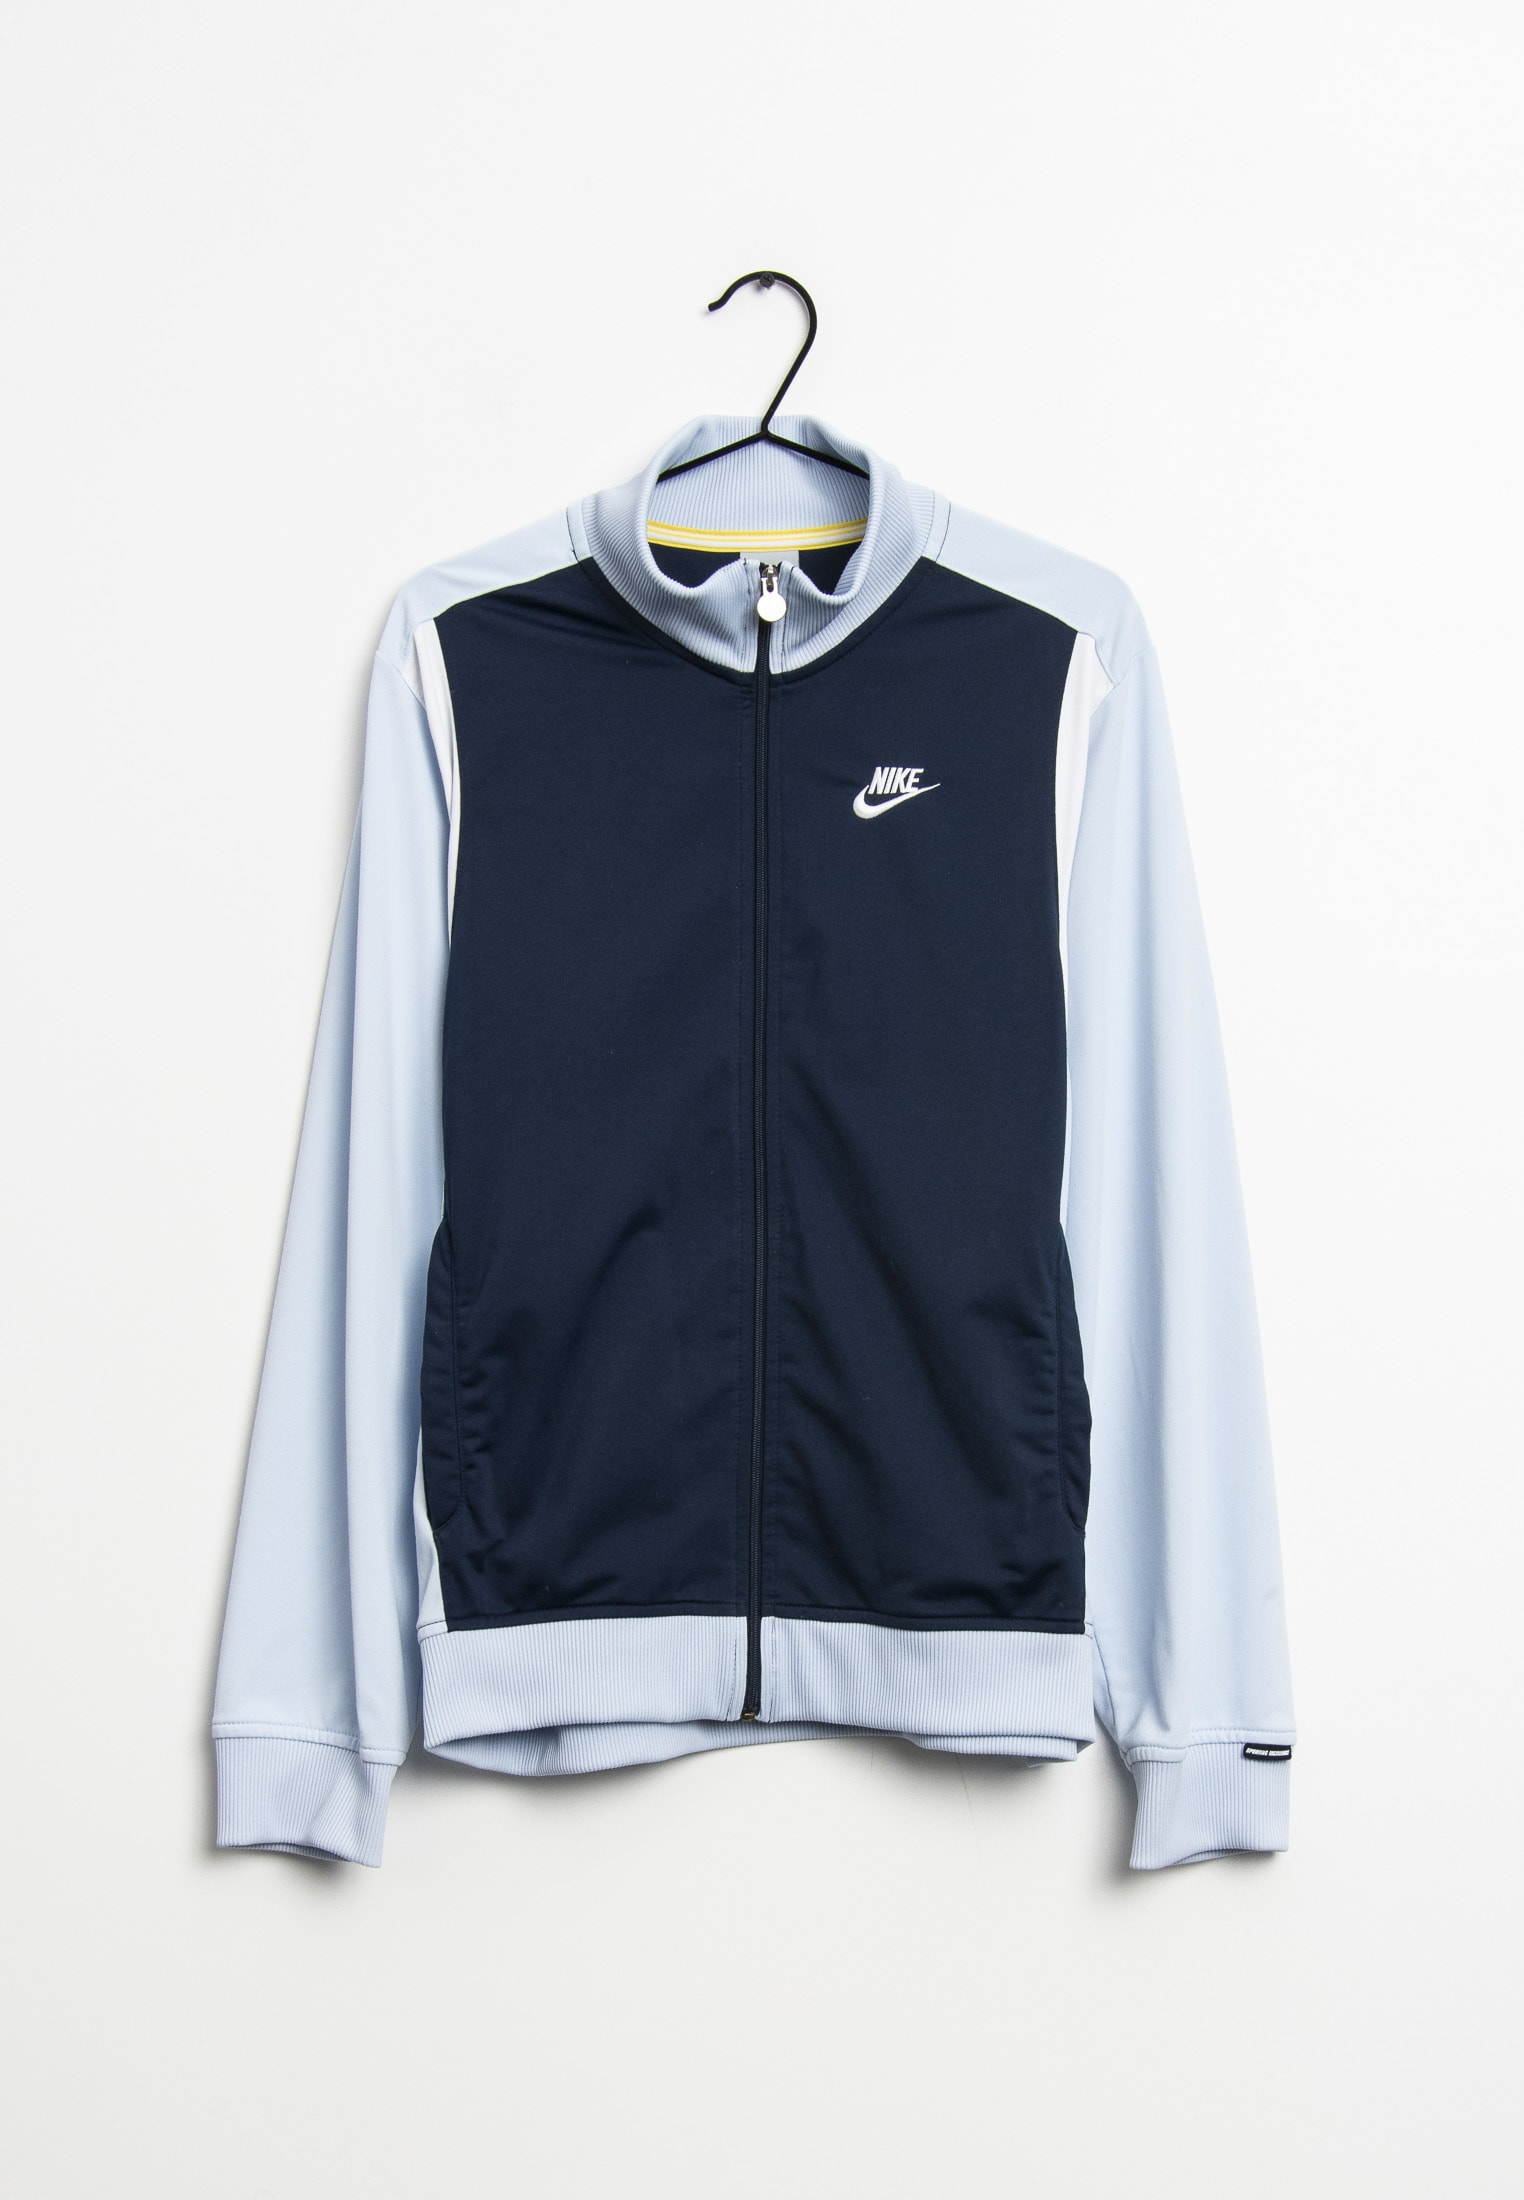 Nike Sweat / Fleece Blau Gr.M